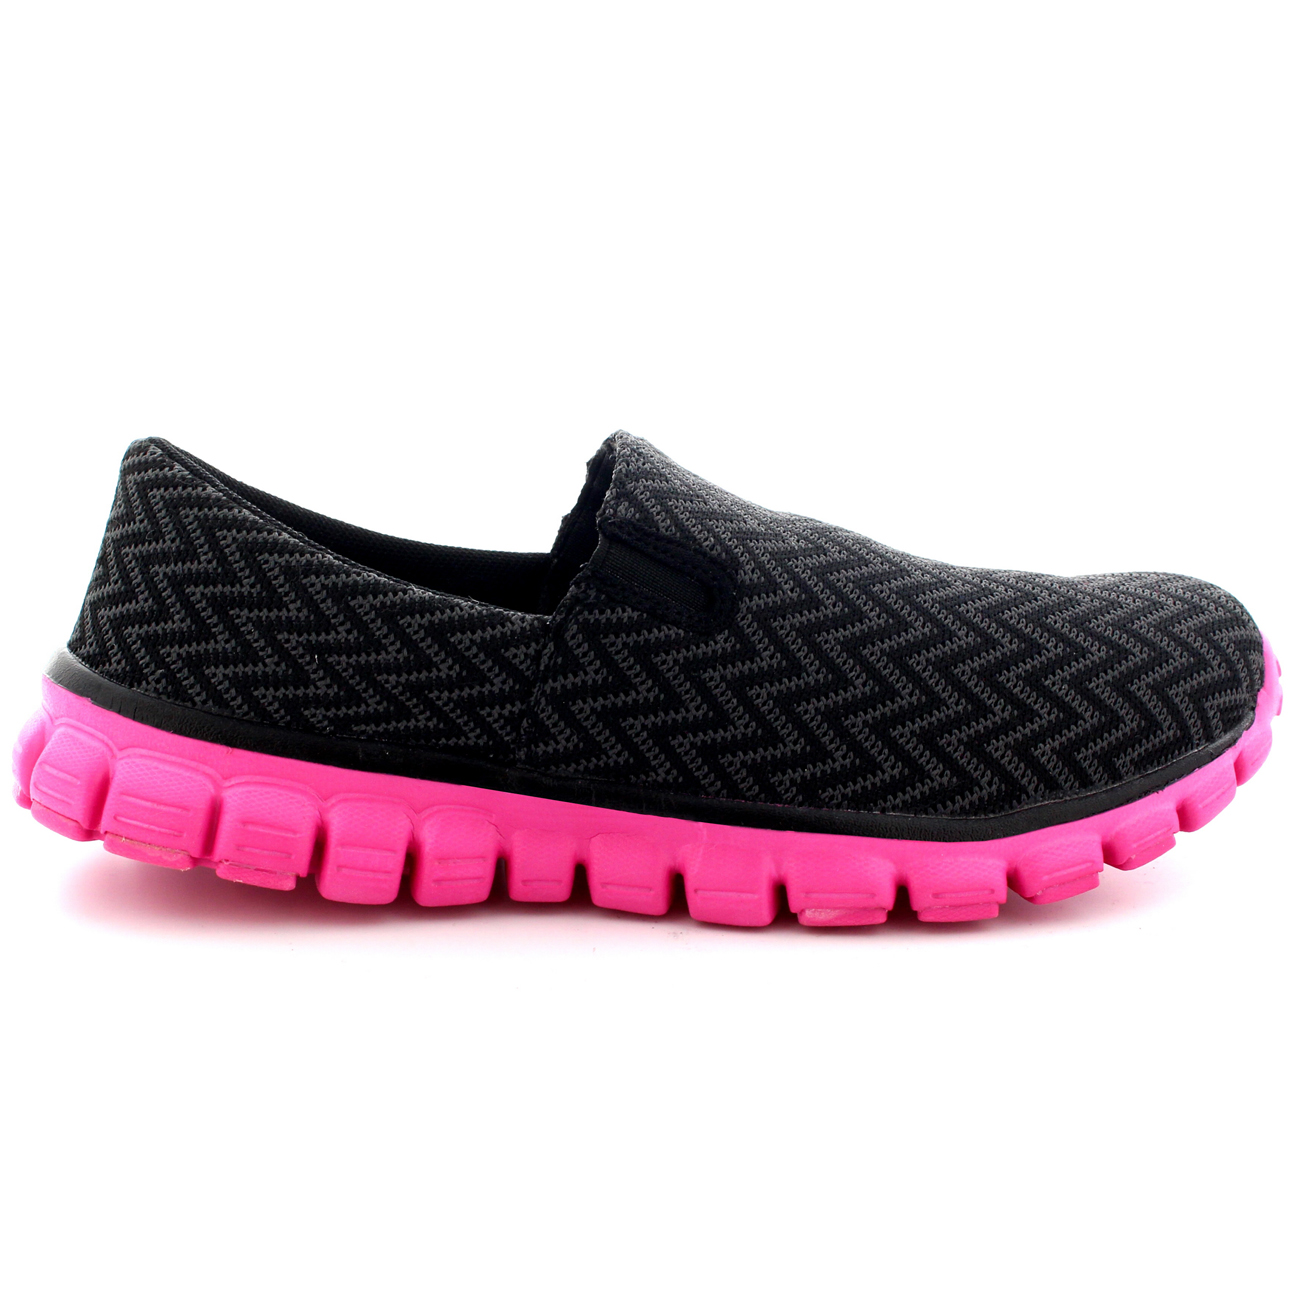 Running Or Walking Shoes For Work